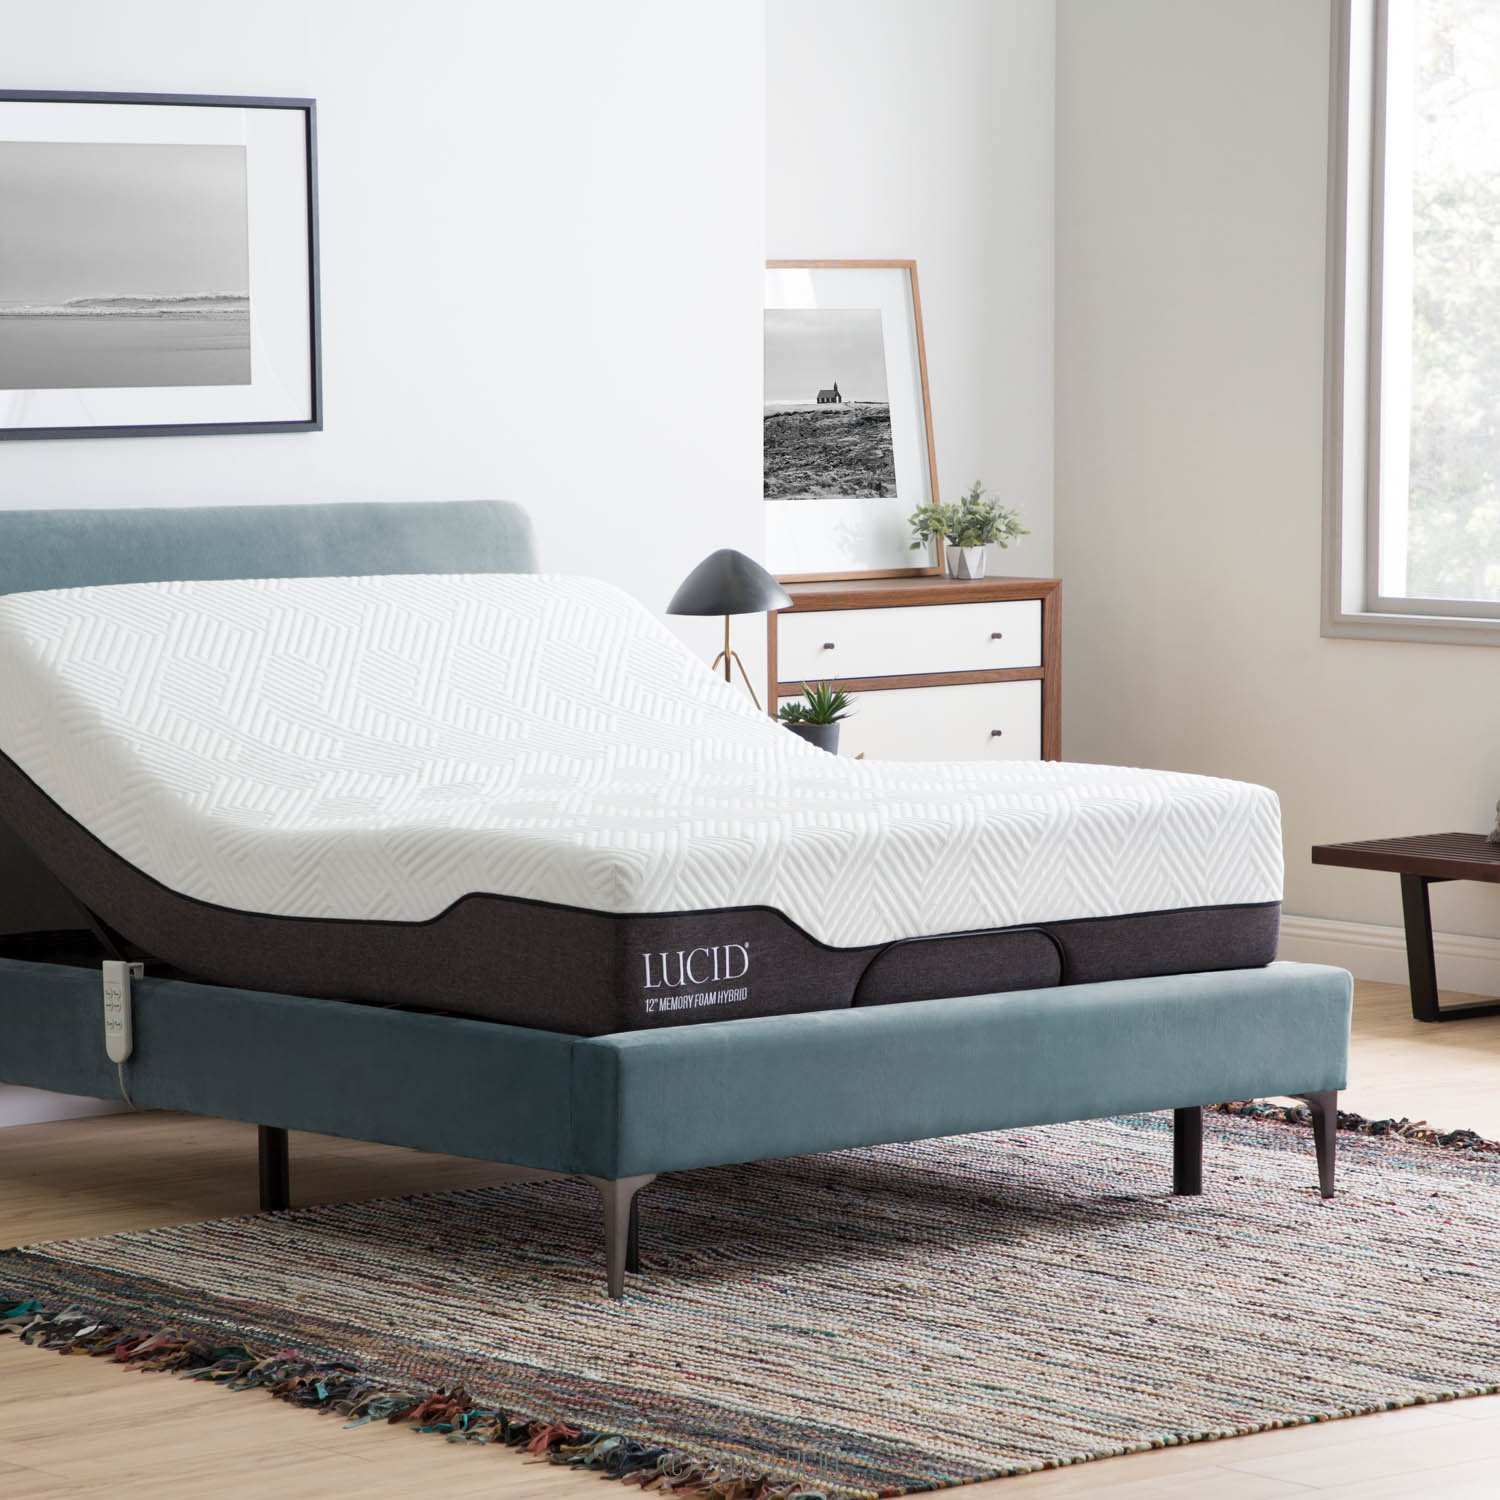 LUCID L100 Adjustable Bed Base Steel Frame - 5 Minute Assembly - Head and Foot Incline - Wired Remote Control - Queen by LUCID (Image #5)